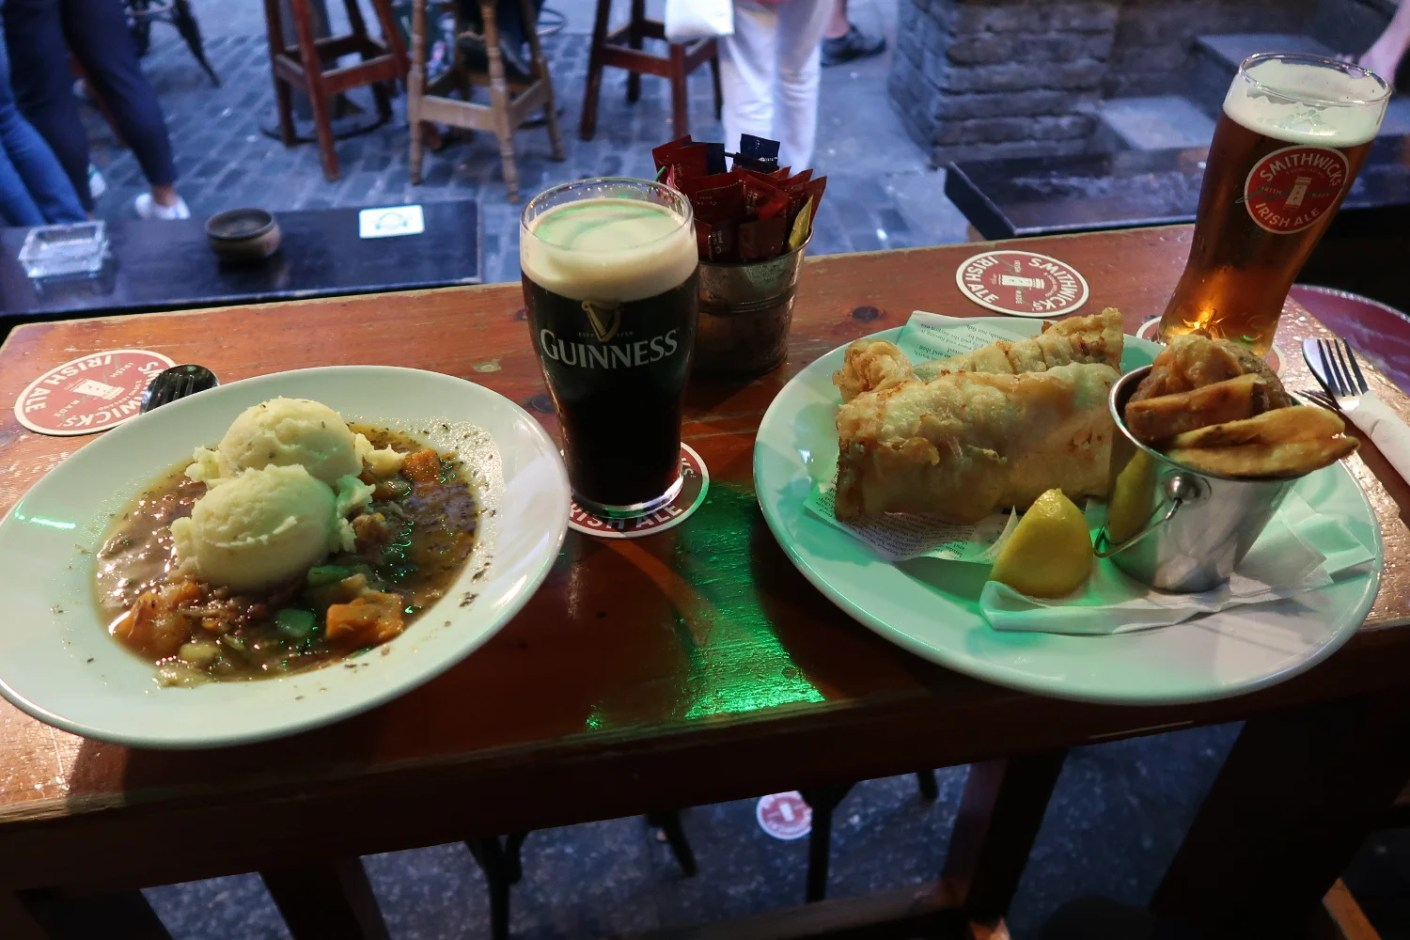 A stereotypical Irish meal at Brazen Head.